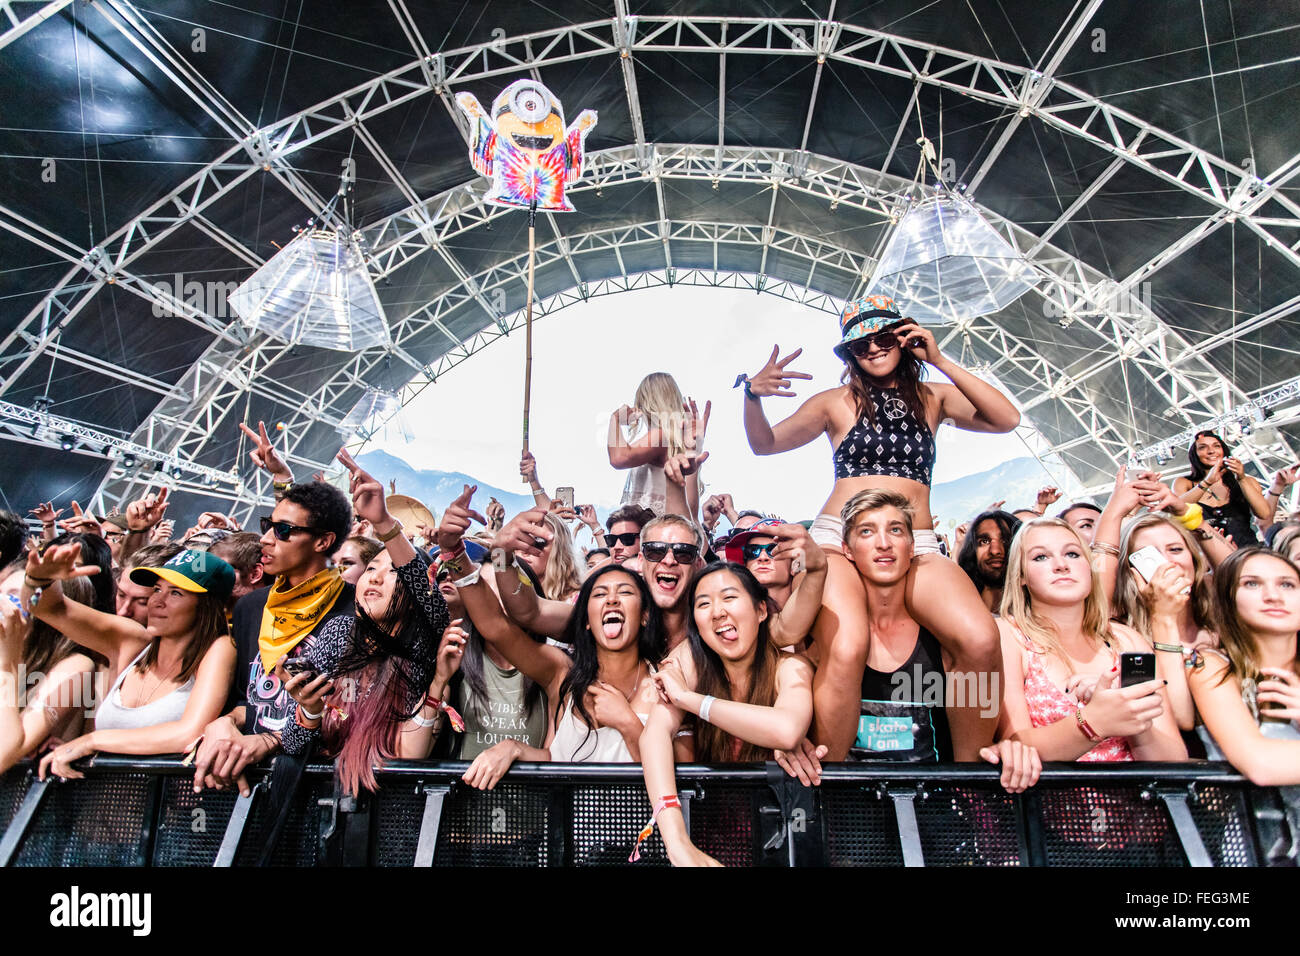 Shot of a crowd dancing inside a festival tent during an outdoor EDM show in 2015 - Stock Image